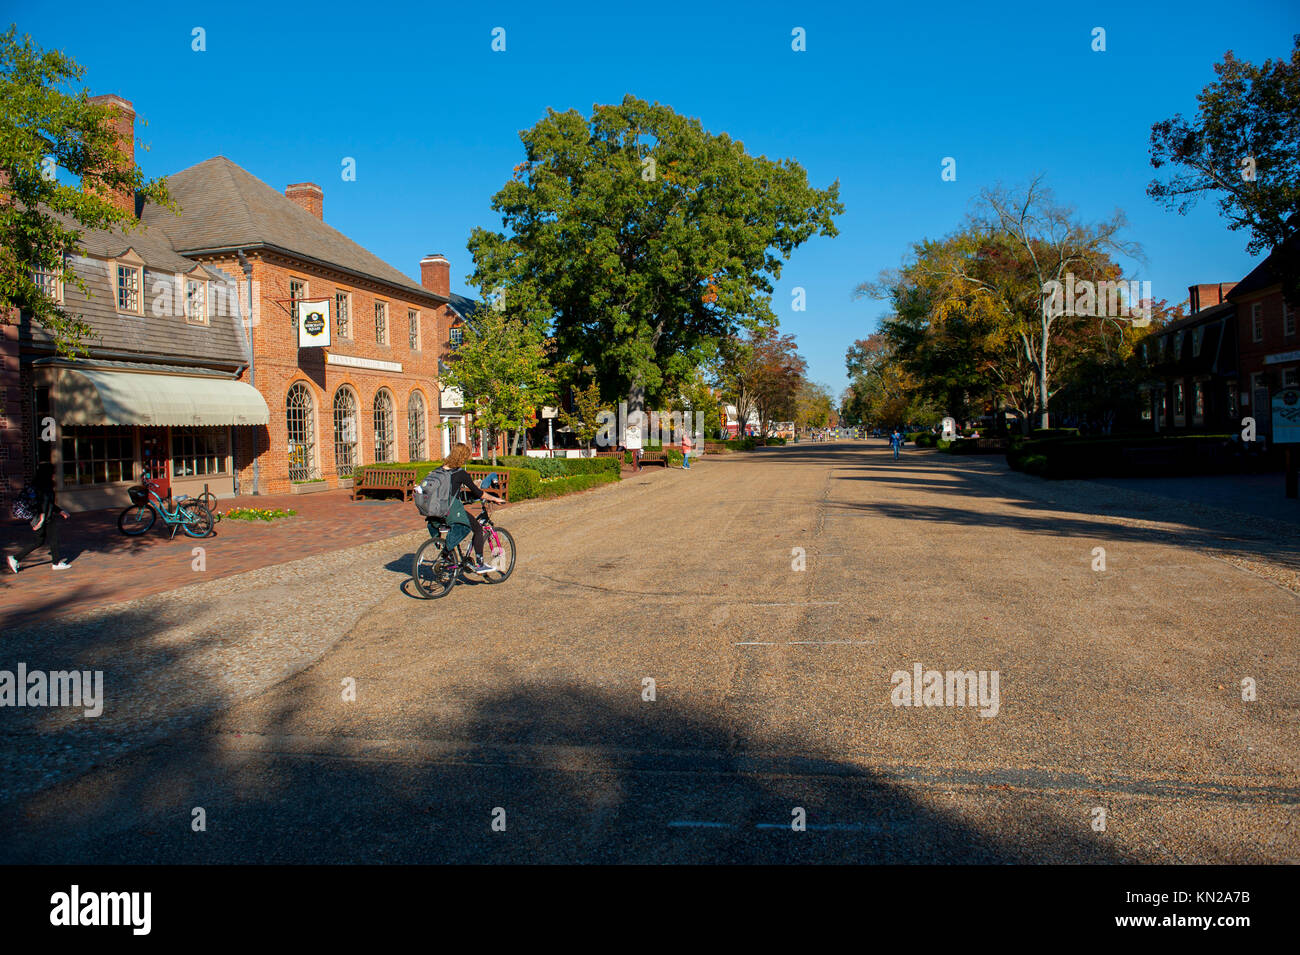 USA Virginia VA Colonial Williamsburg Merchants Square Duke of Gloucester Street Fall Autumn - Stock Image